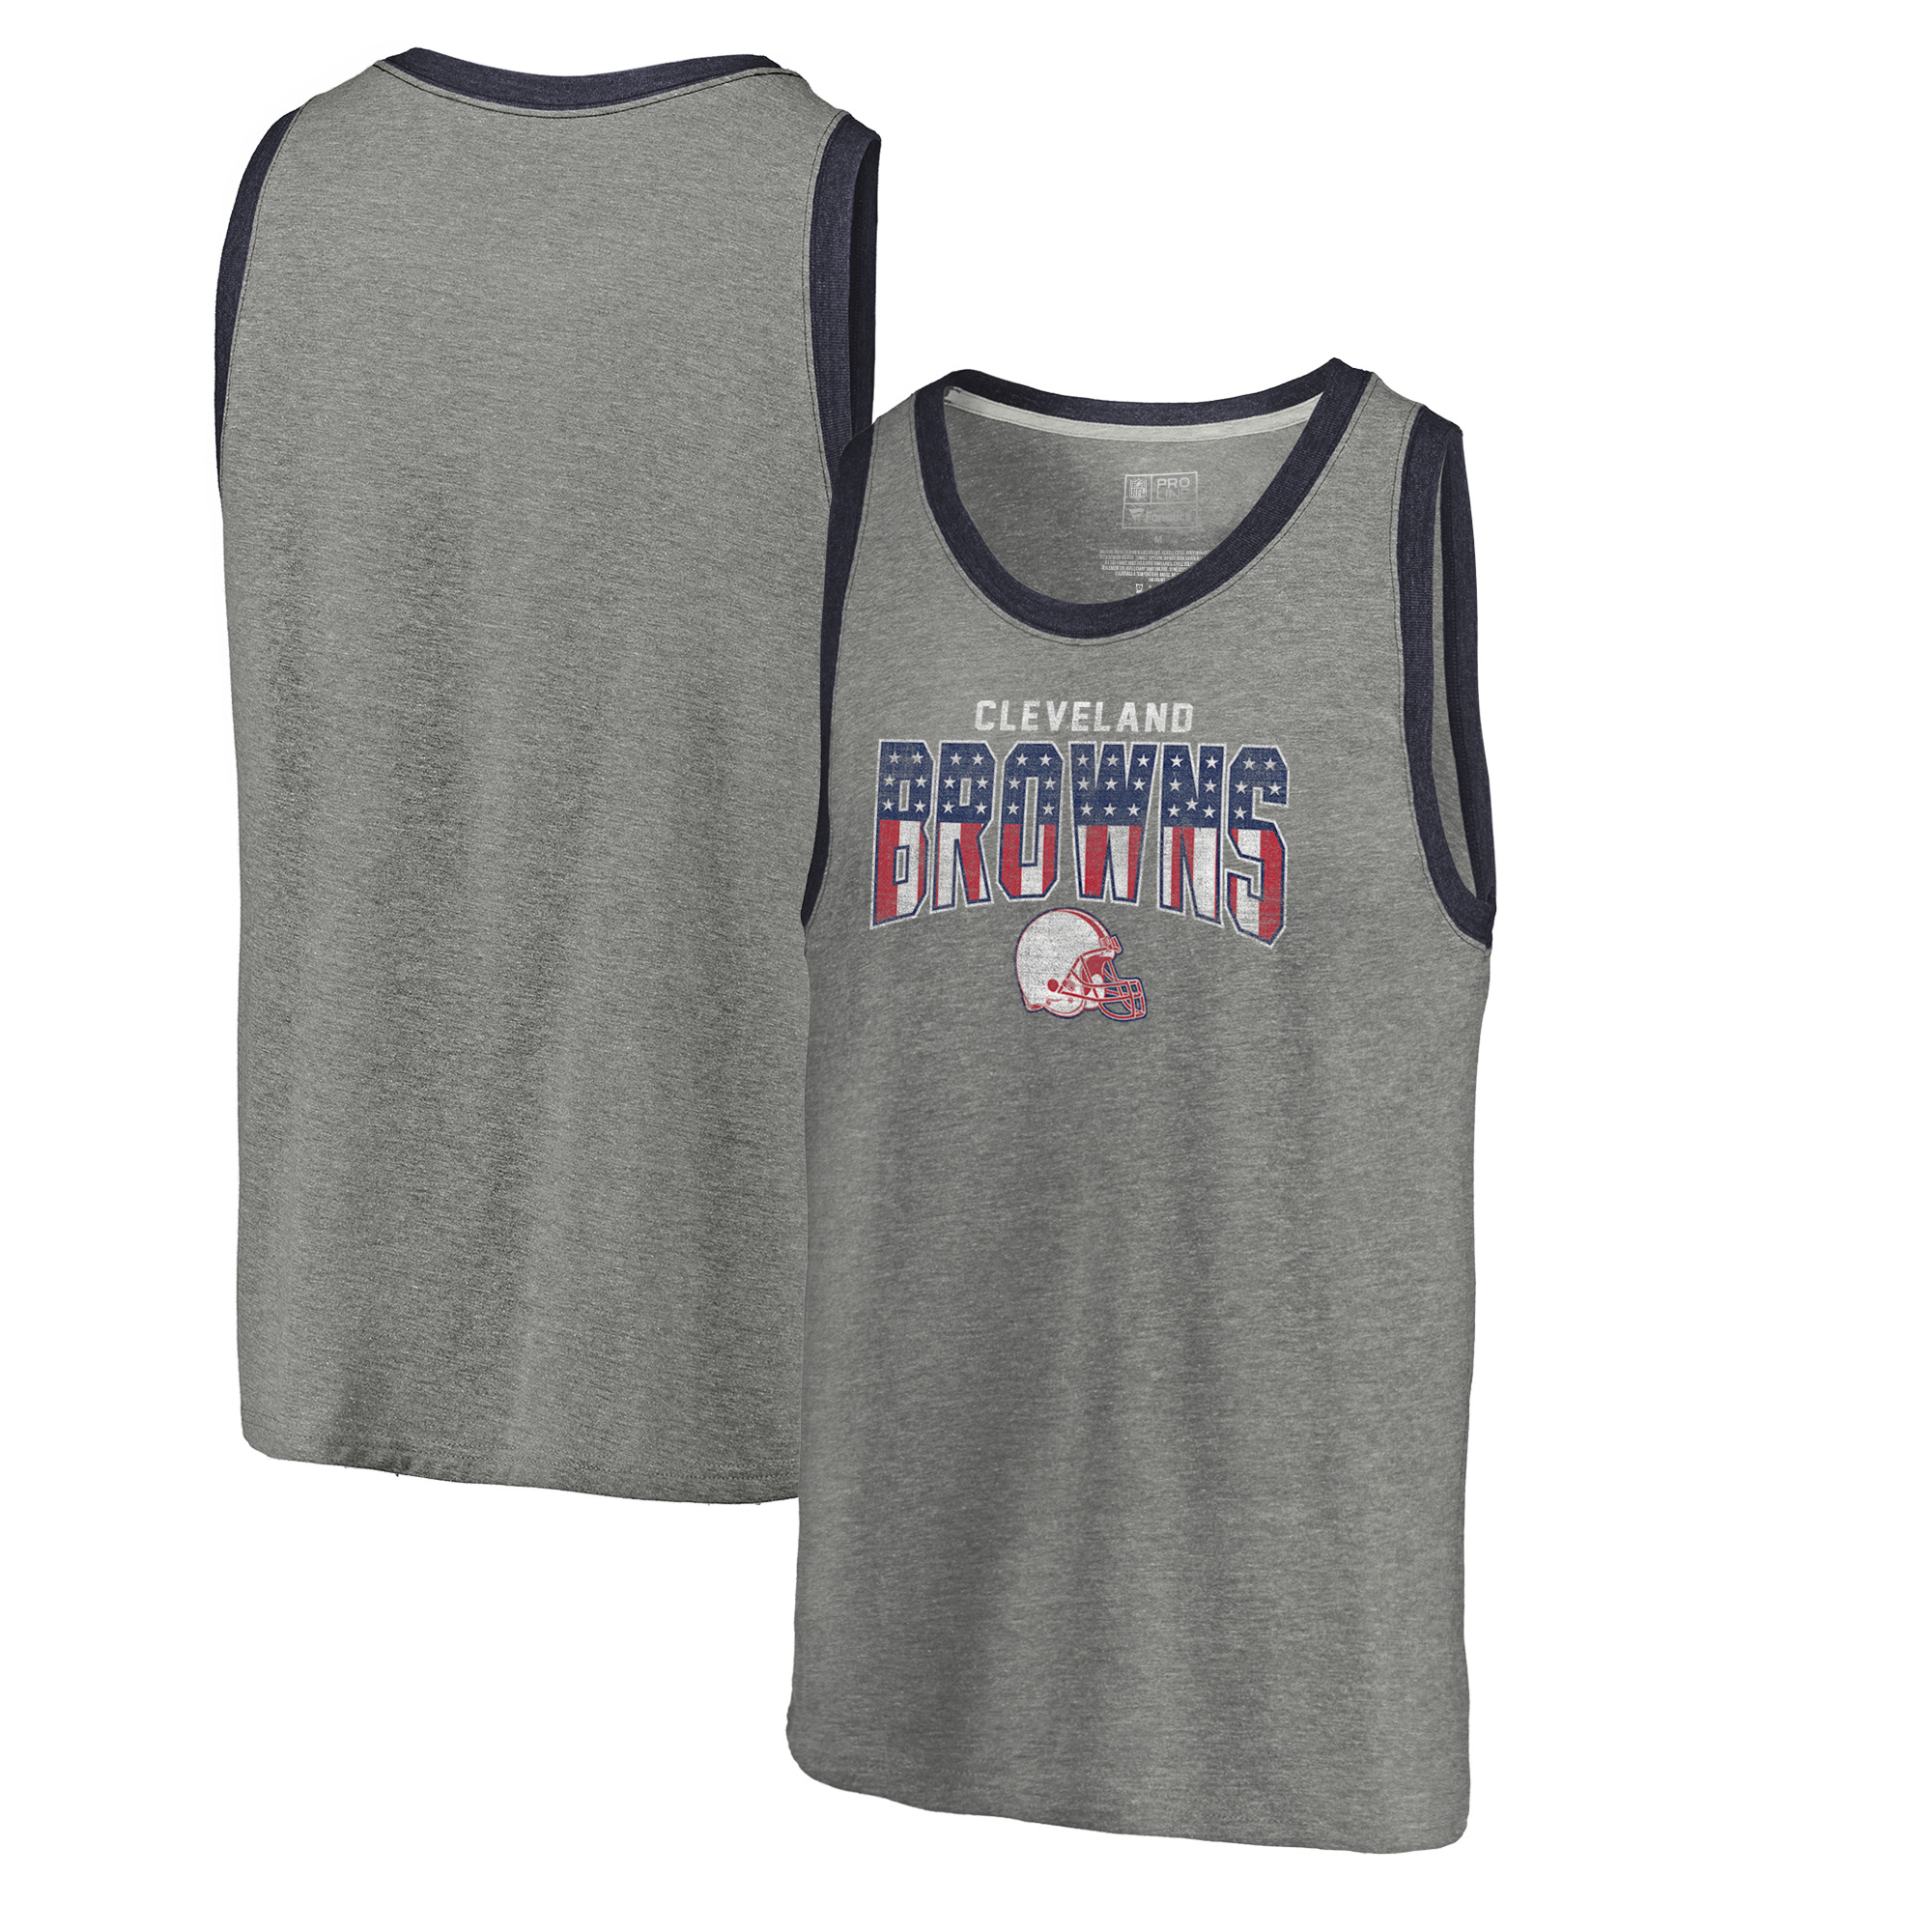 Cleveland Browns NFL Pro Line by Fanatics Branded Freedom Tri-Blend Tank Top - Heathered Gray